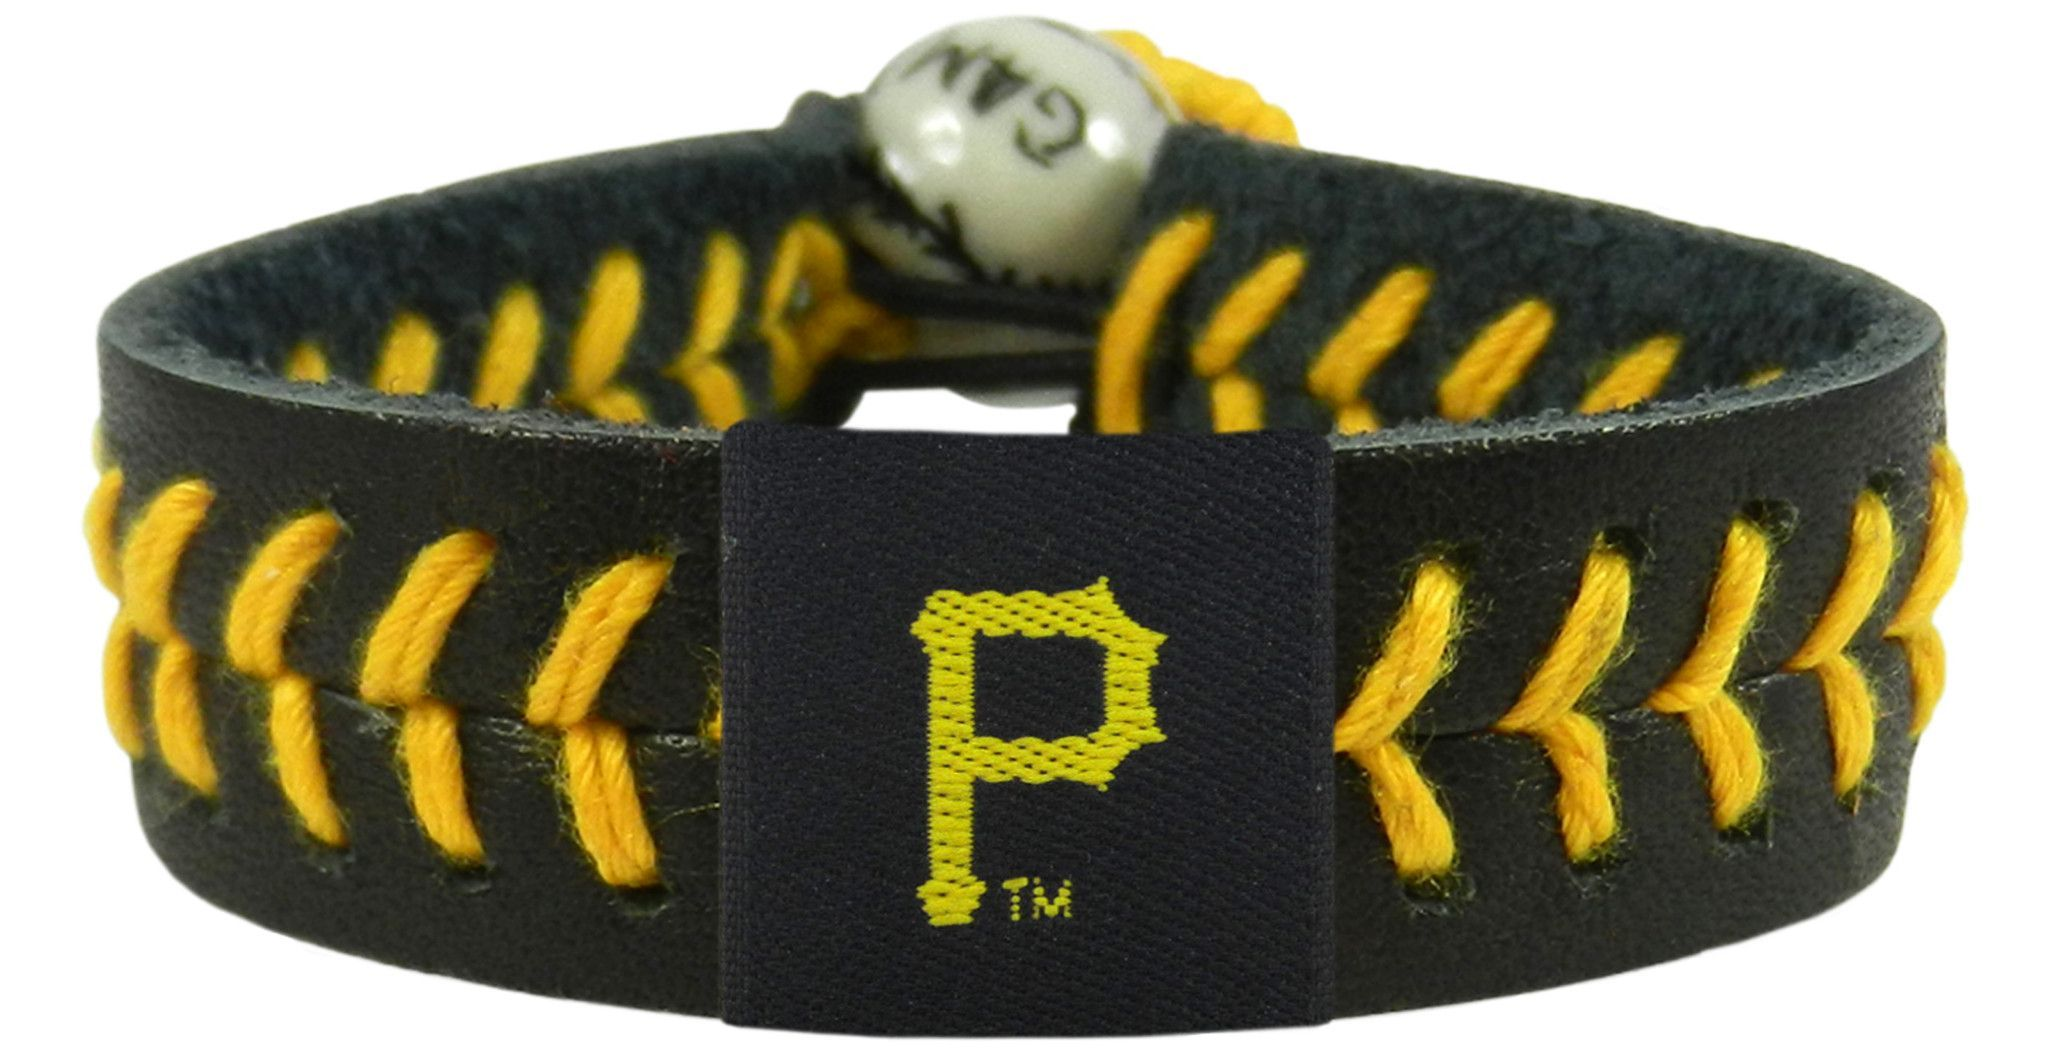 8cebf893649f2 Pittsburgh Pirates Baseball Bracelet - Team Color Style